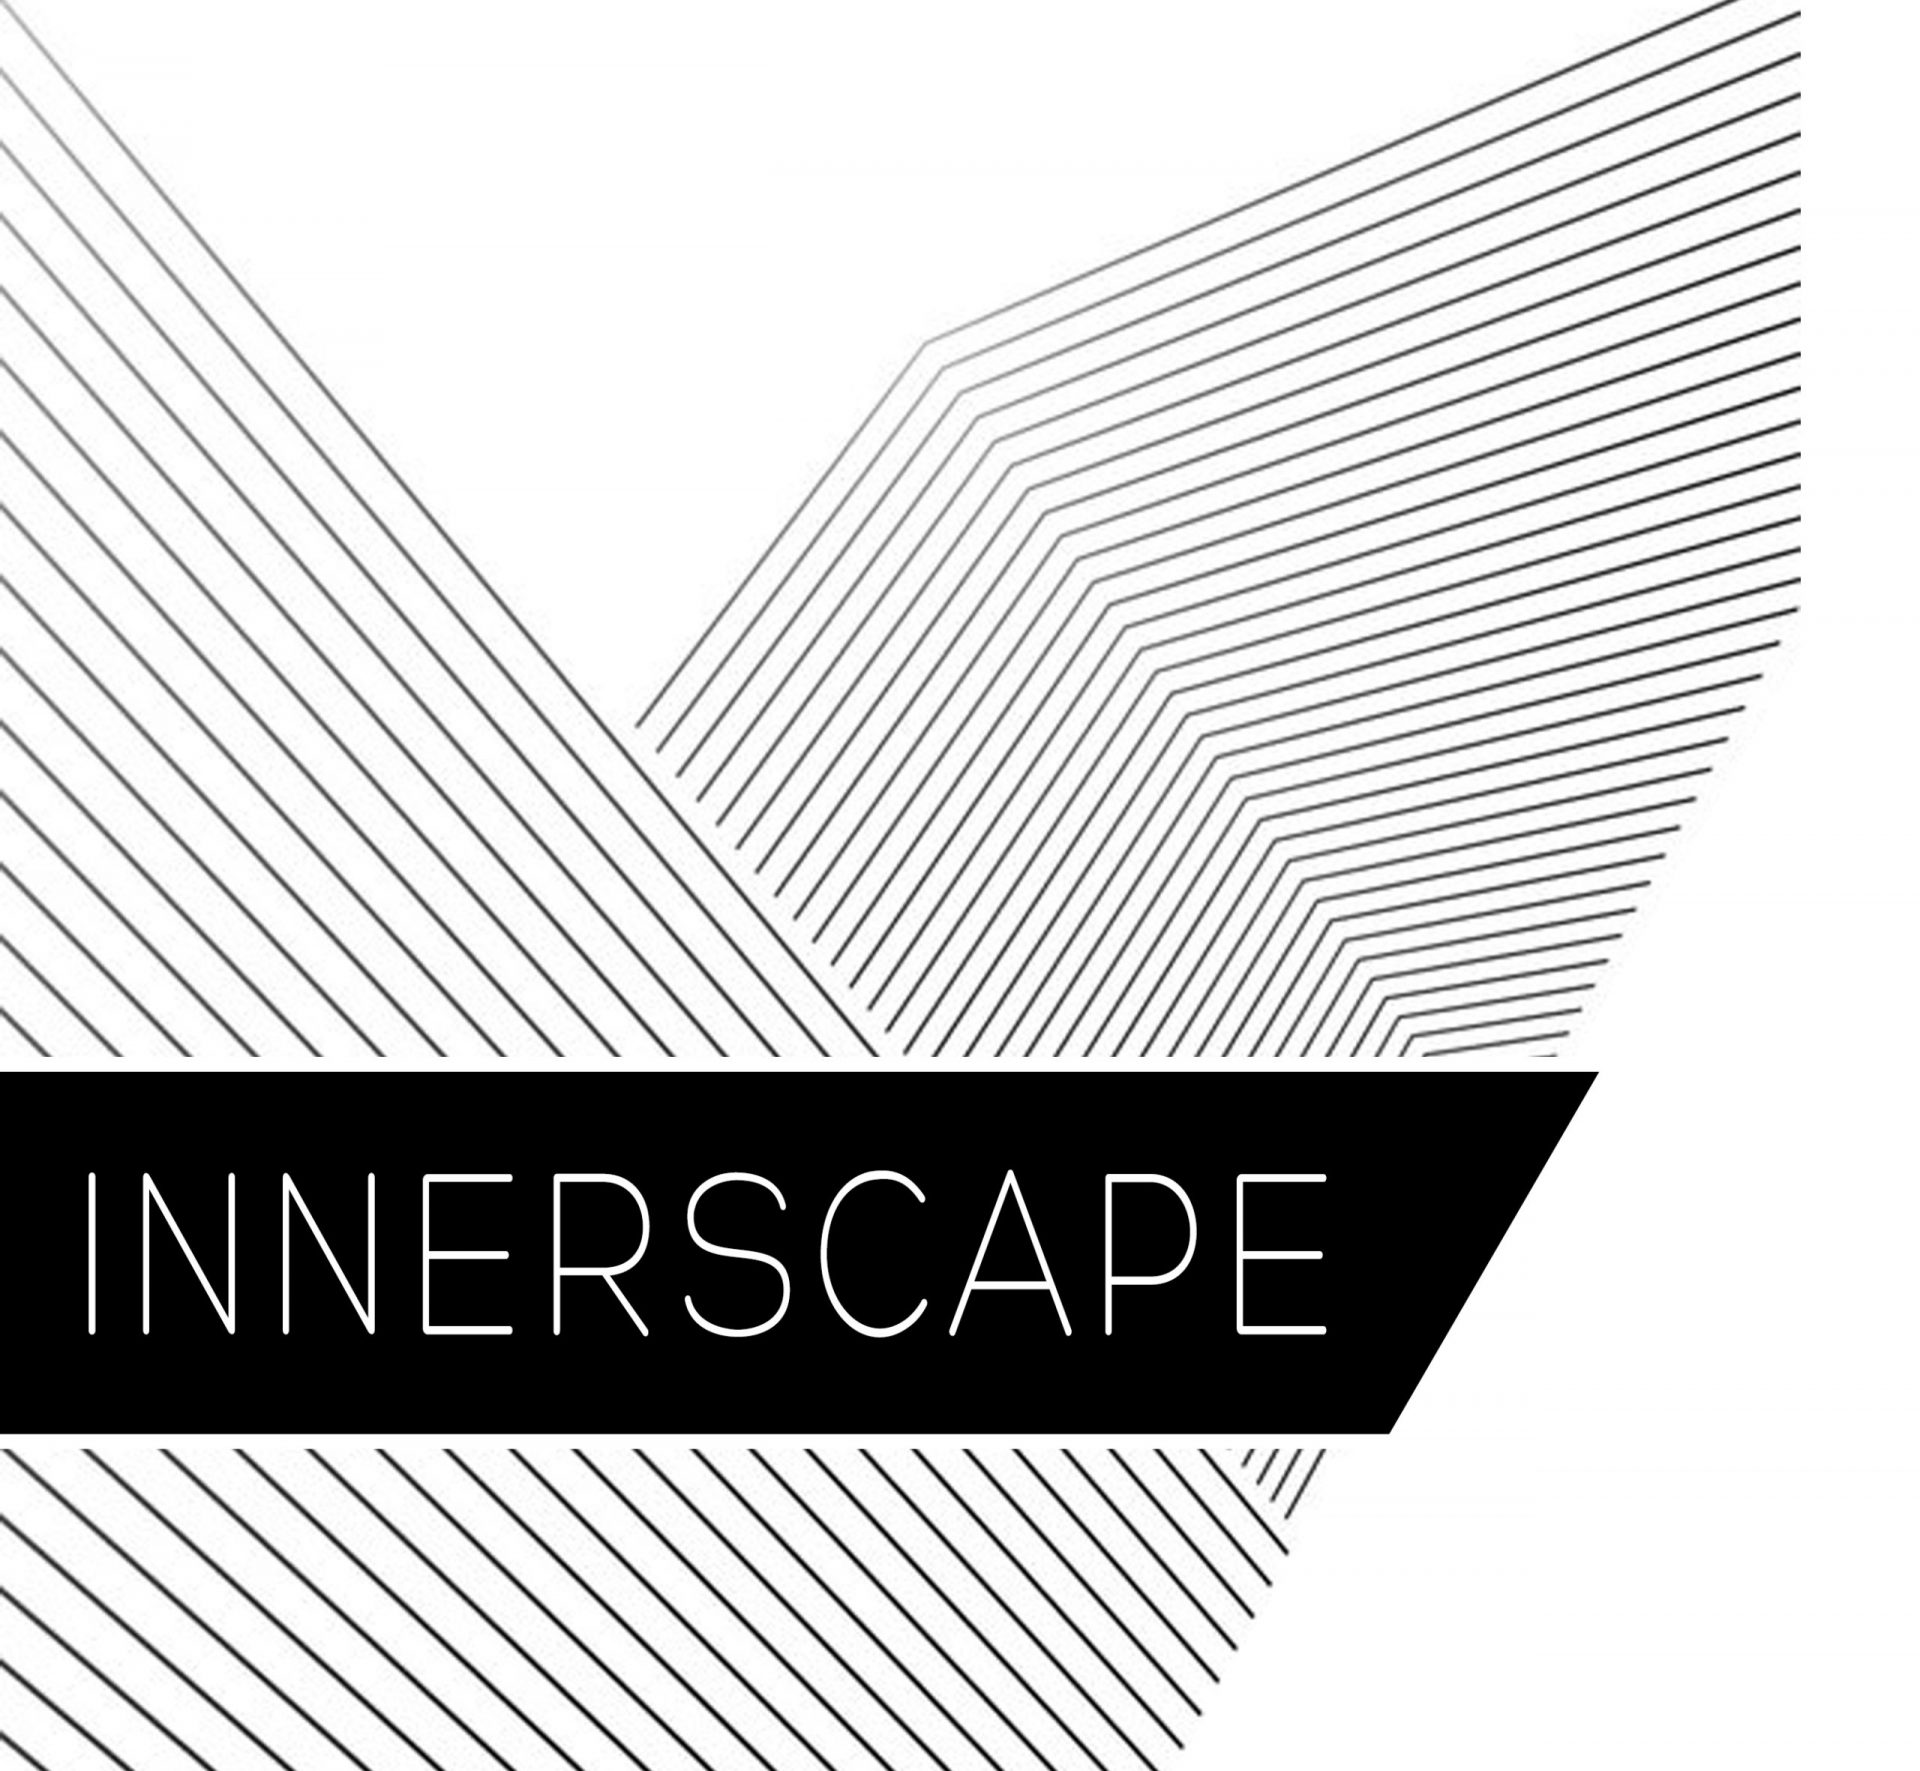 innerscape realease